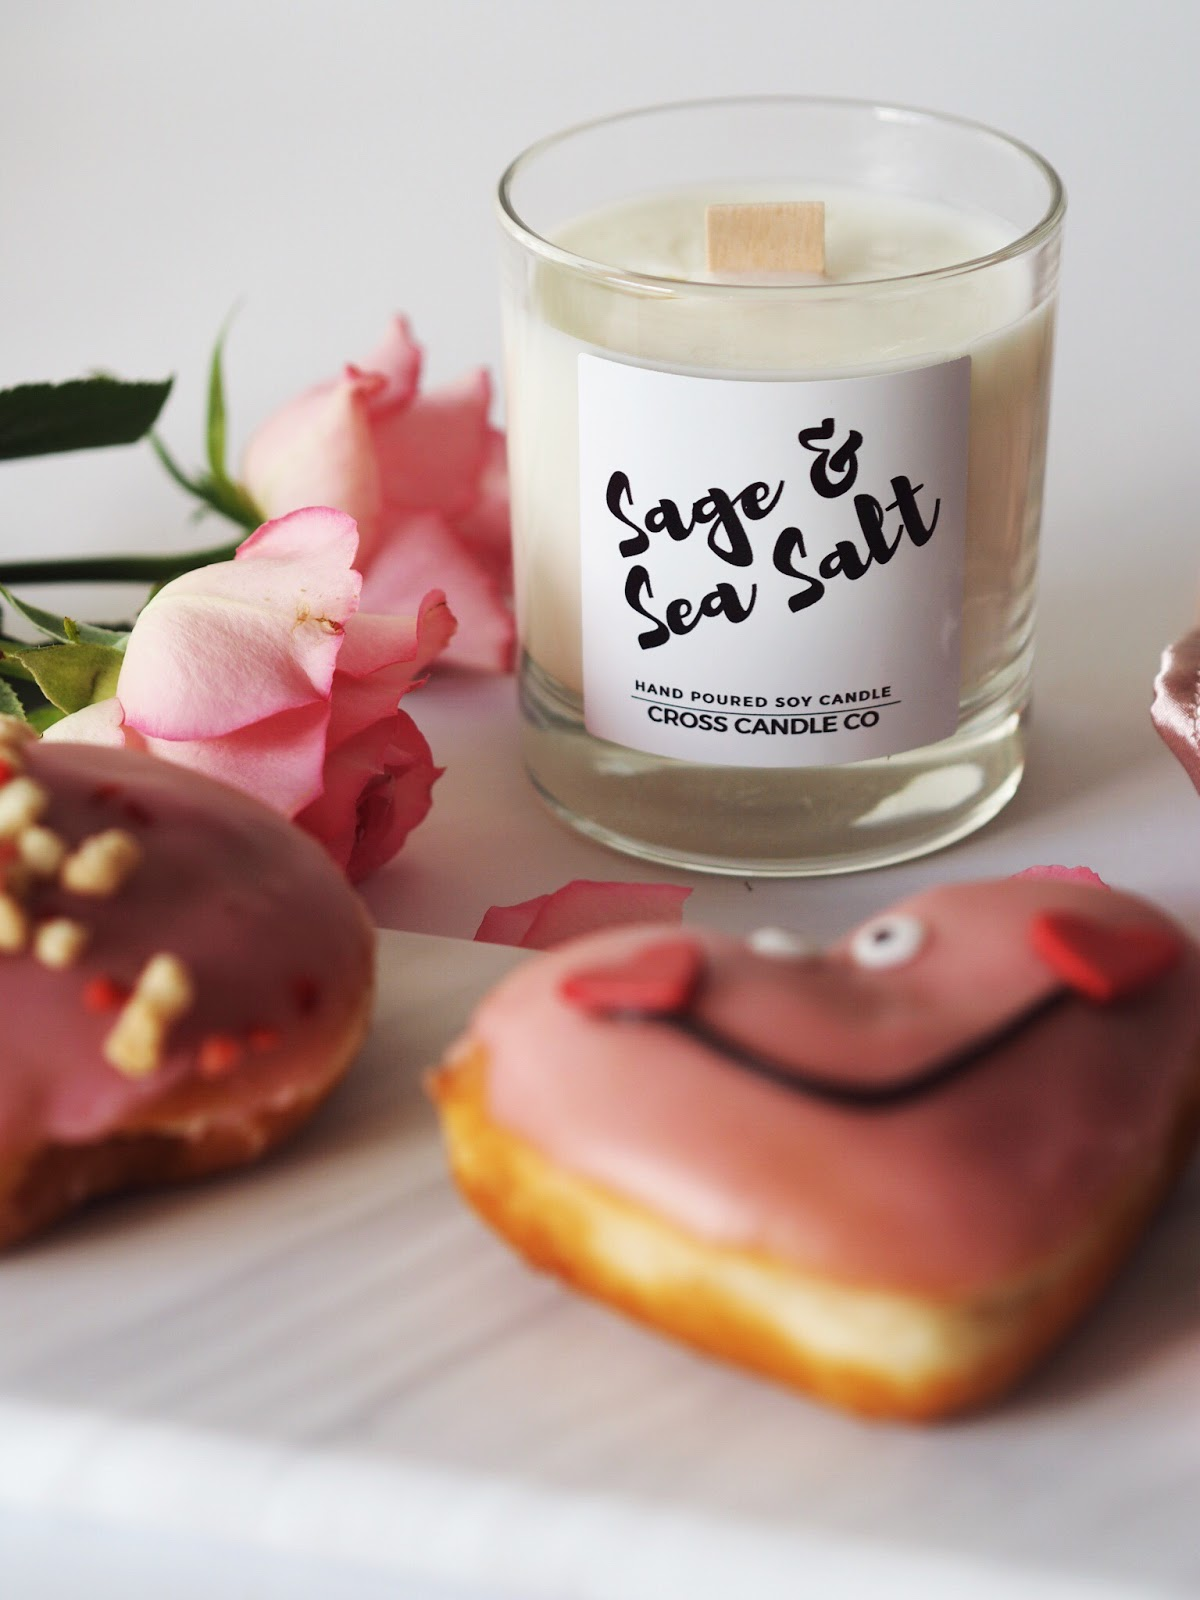 Cosy Valentines Krispie Kreme Pink Dougnuts, Sage and Sea Salt Cross Candle Soy Wax Candle